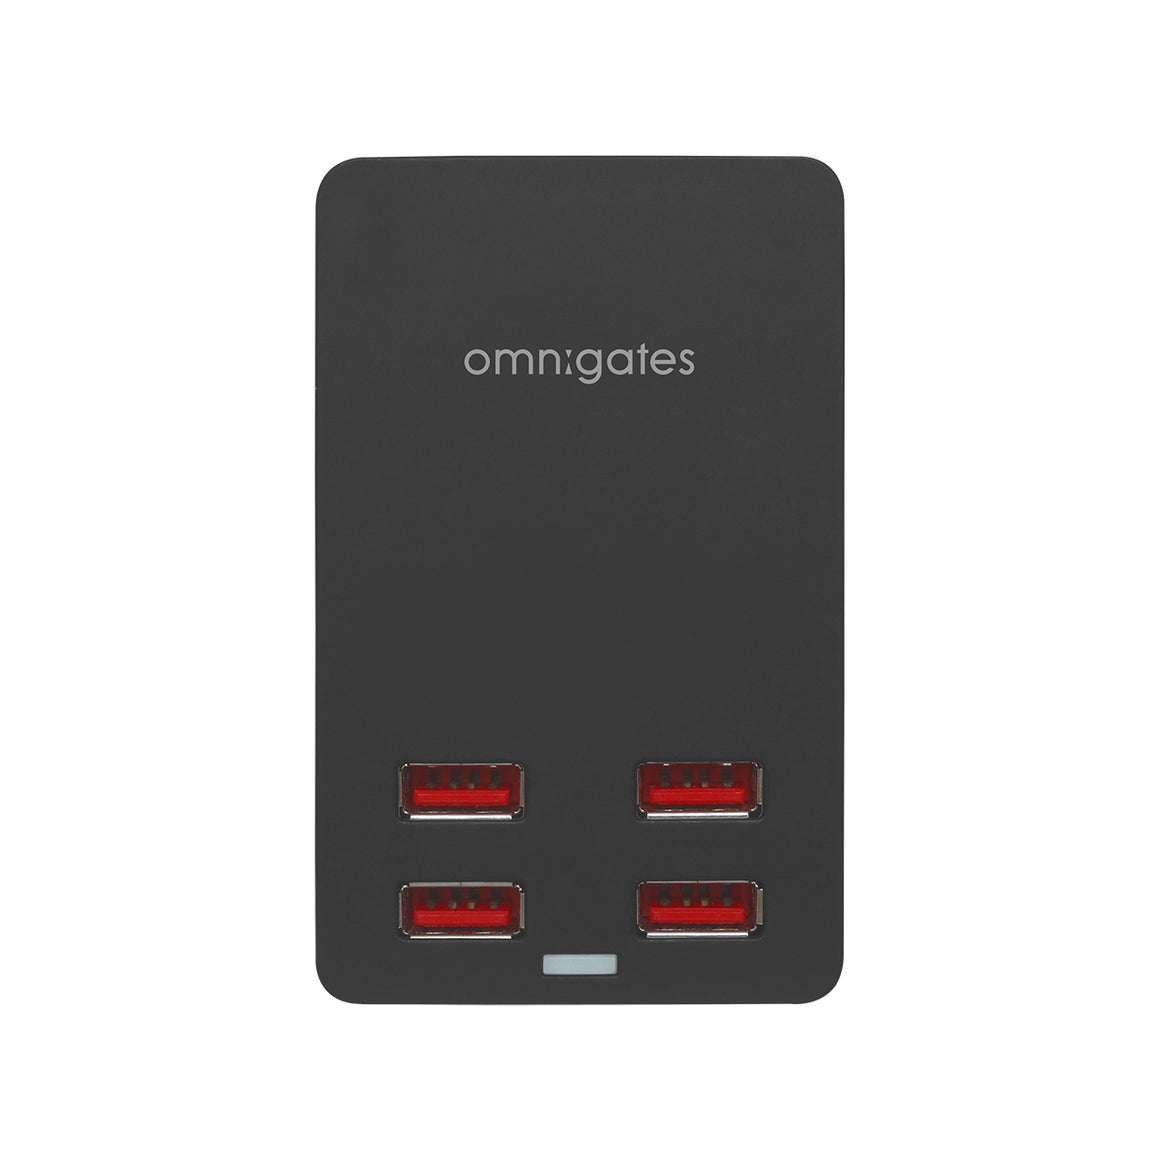 omnigates black 4 Port USB Smart Charger